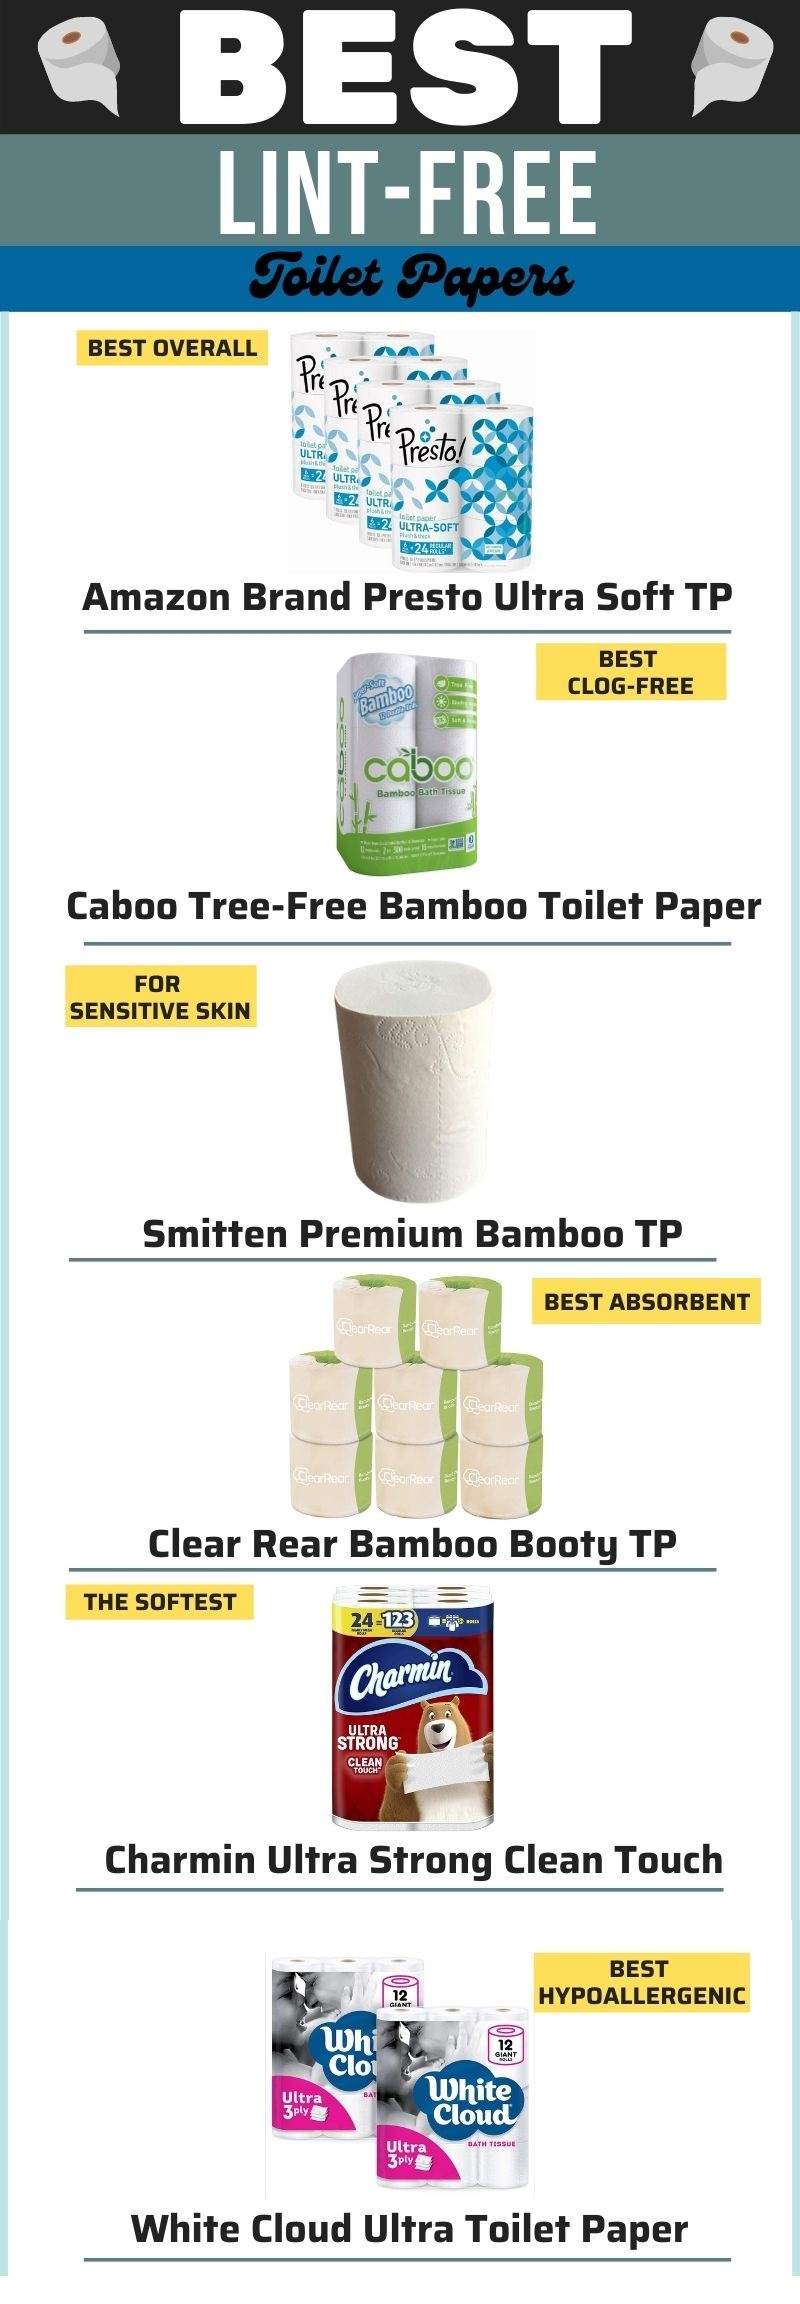 Best Lint Free Toilet Papers